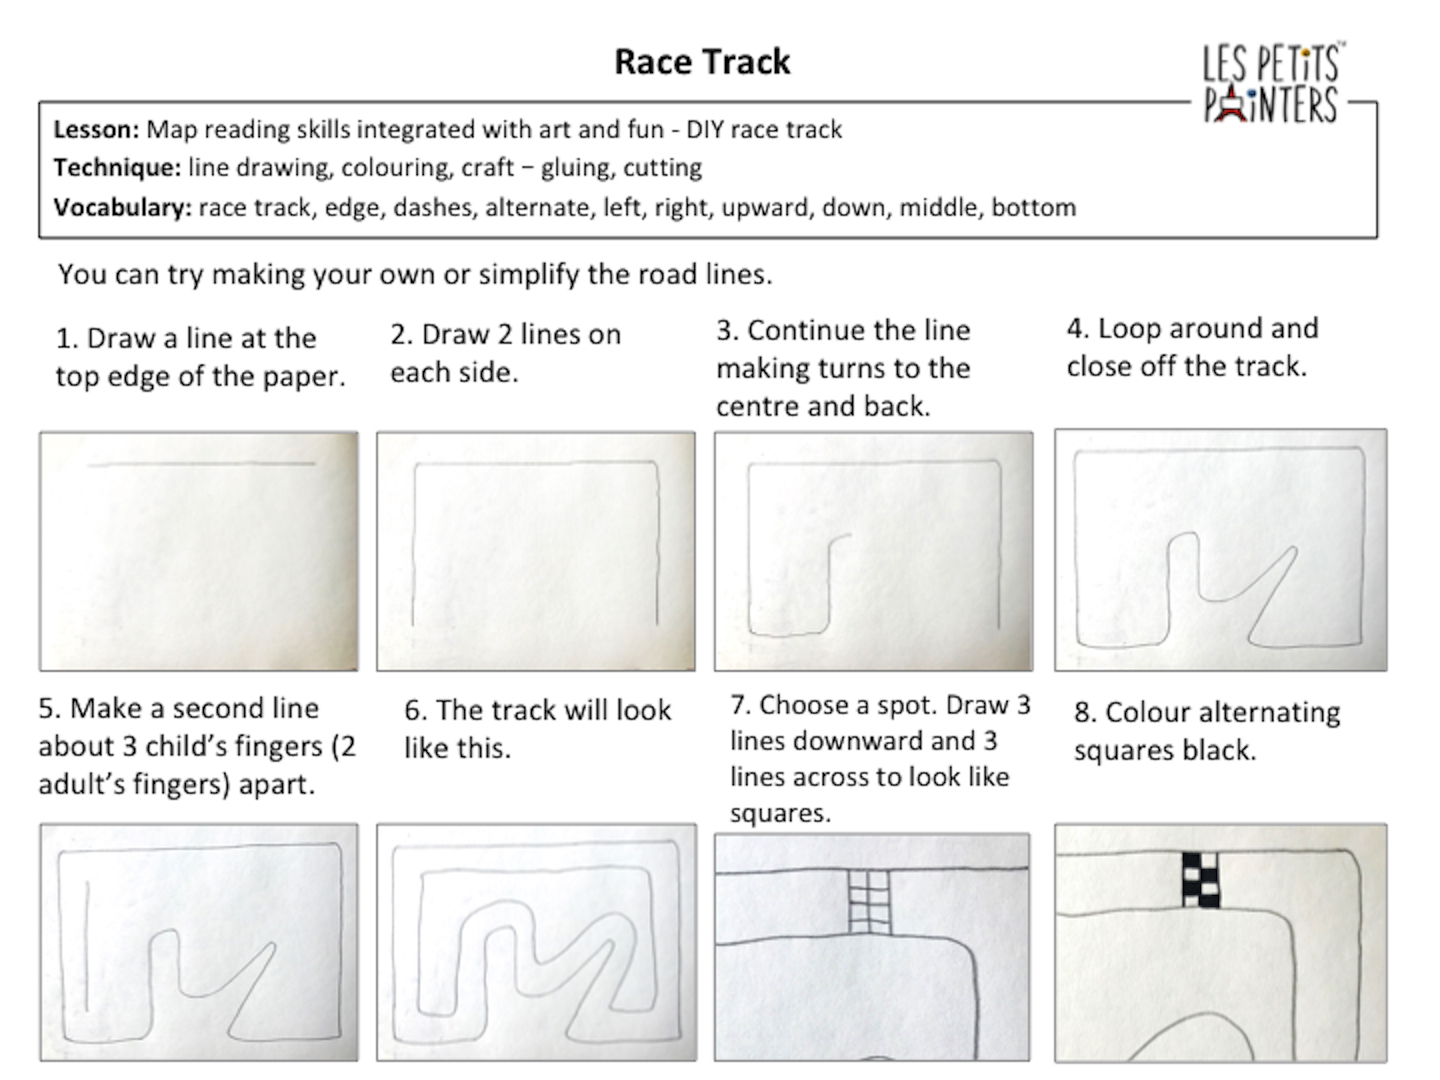 Les Petits Painters art and craft games kids can play while learning, race track map for kids, kids activities, do at home activities for children